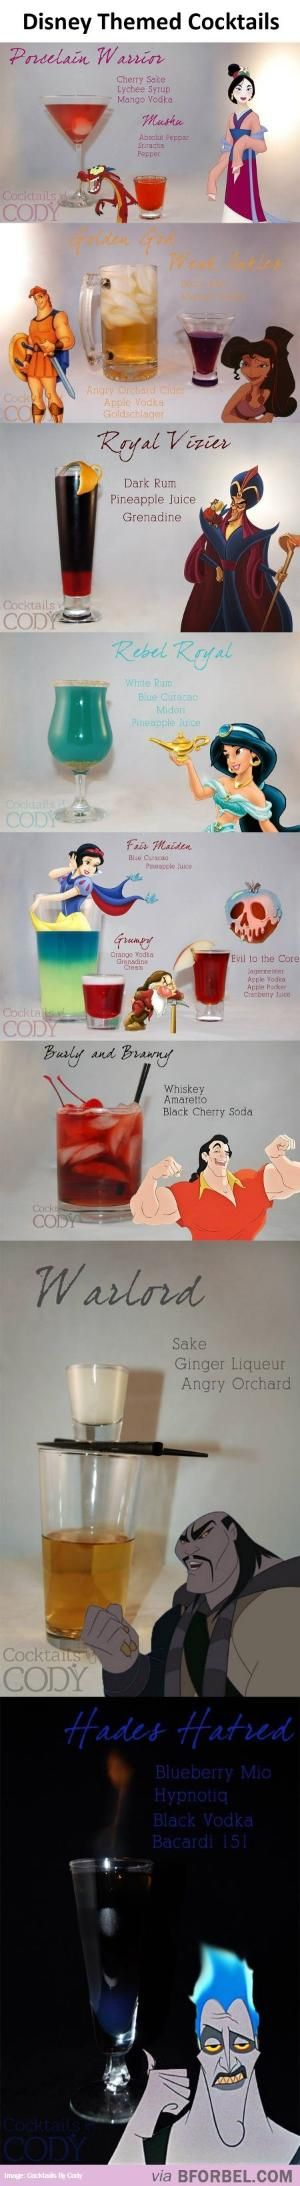 12 More Disney Themed Cocktails You'll Definitely Love